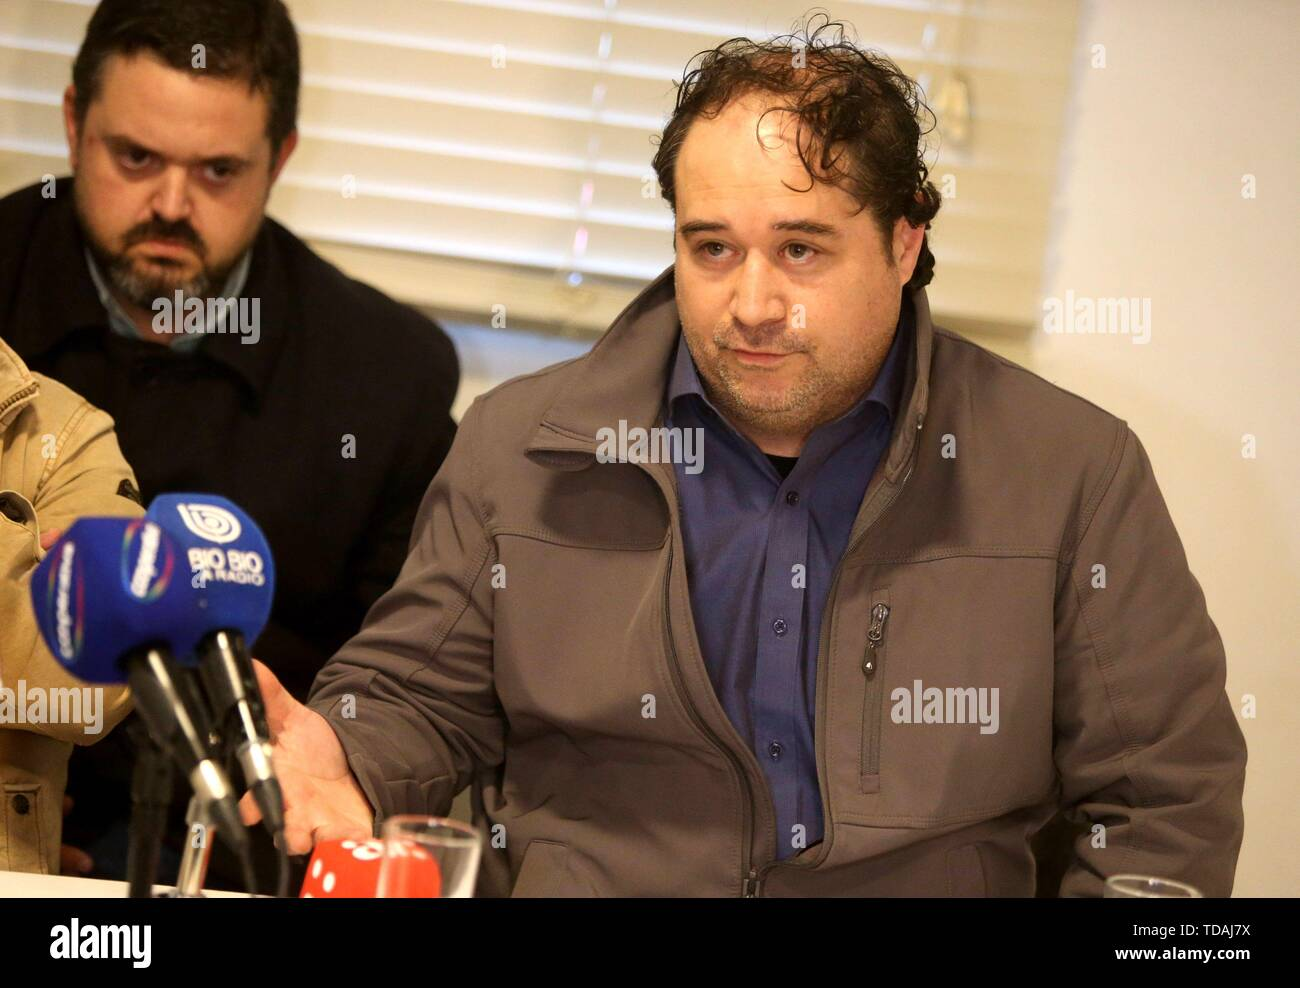 Santiago, Chile. 14th June, 2019. Plaintiff Mauricio Pulgar, former seminarian of the Valaparaiso diocese, delivers a press conference, in Santiago, Chile, 14 June 2019, to explain the details of the lawsuit against all the authors, accomplices and accessories of the abuses committed inside the institution. Credit: Alberto Pena/EFE/Alamy Live News - Stock Image